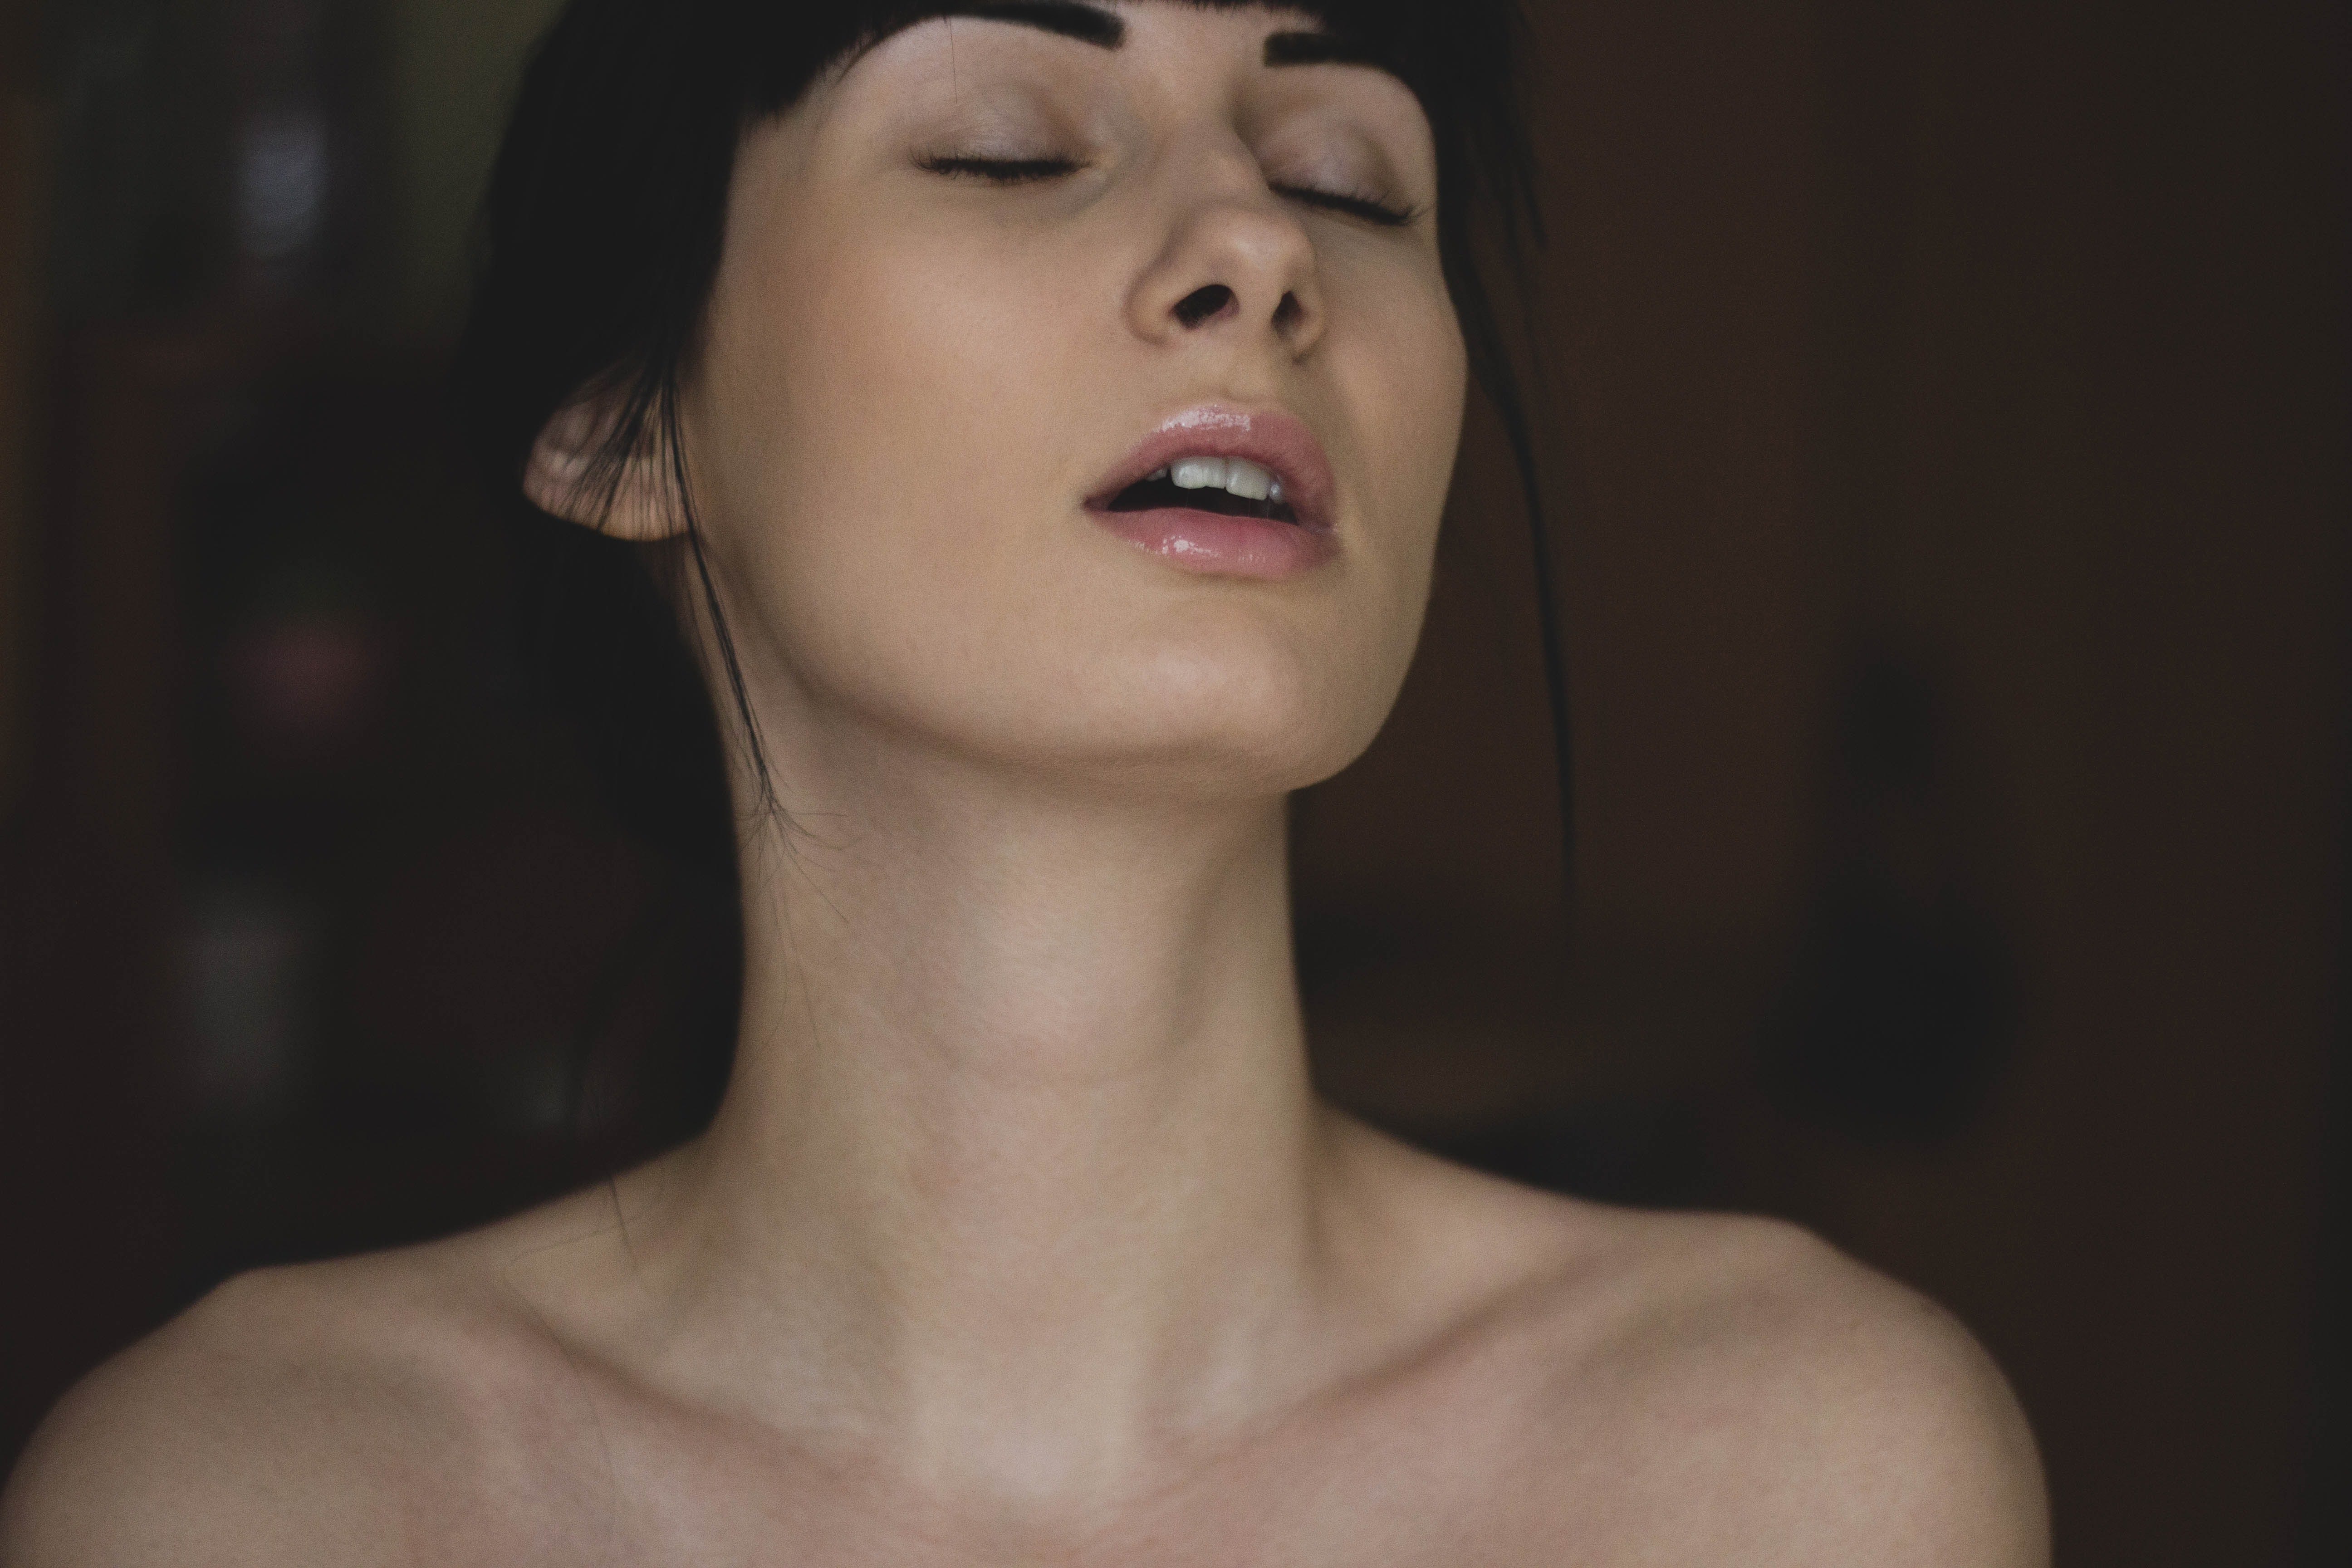 This Photographer Captured Women's Orgasm Faces To Talk About Sexuality